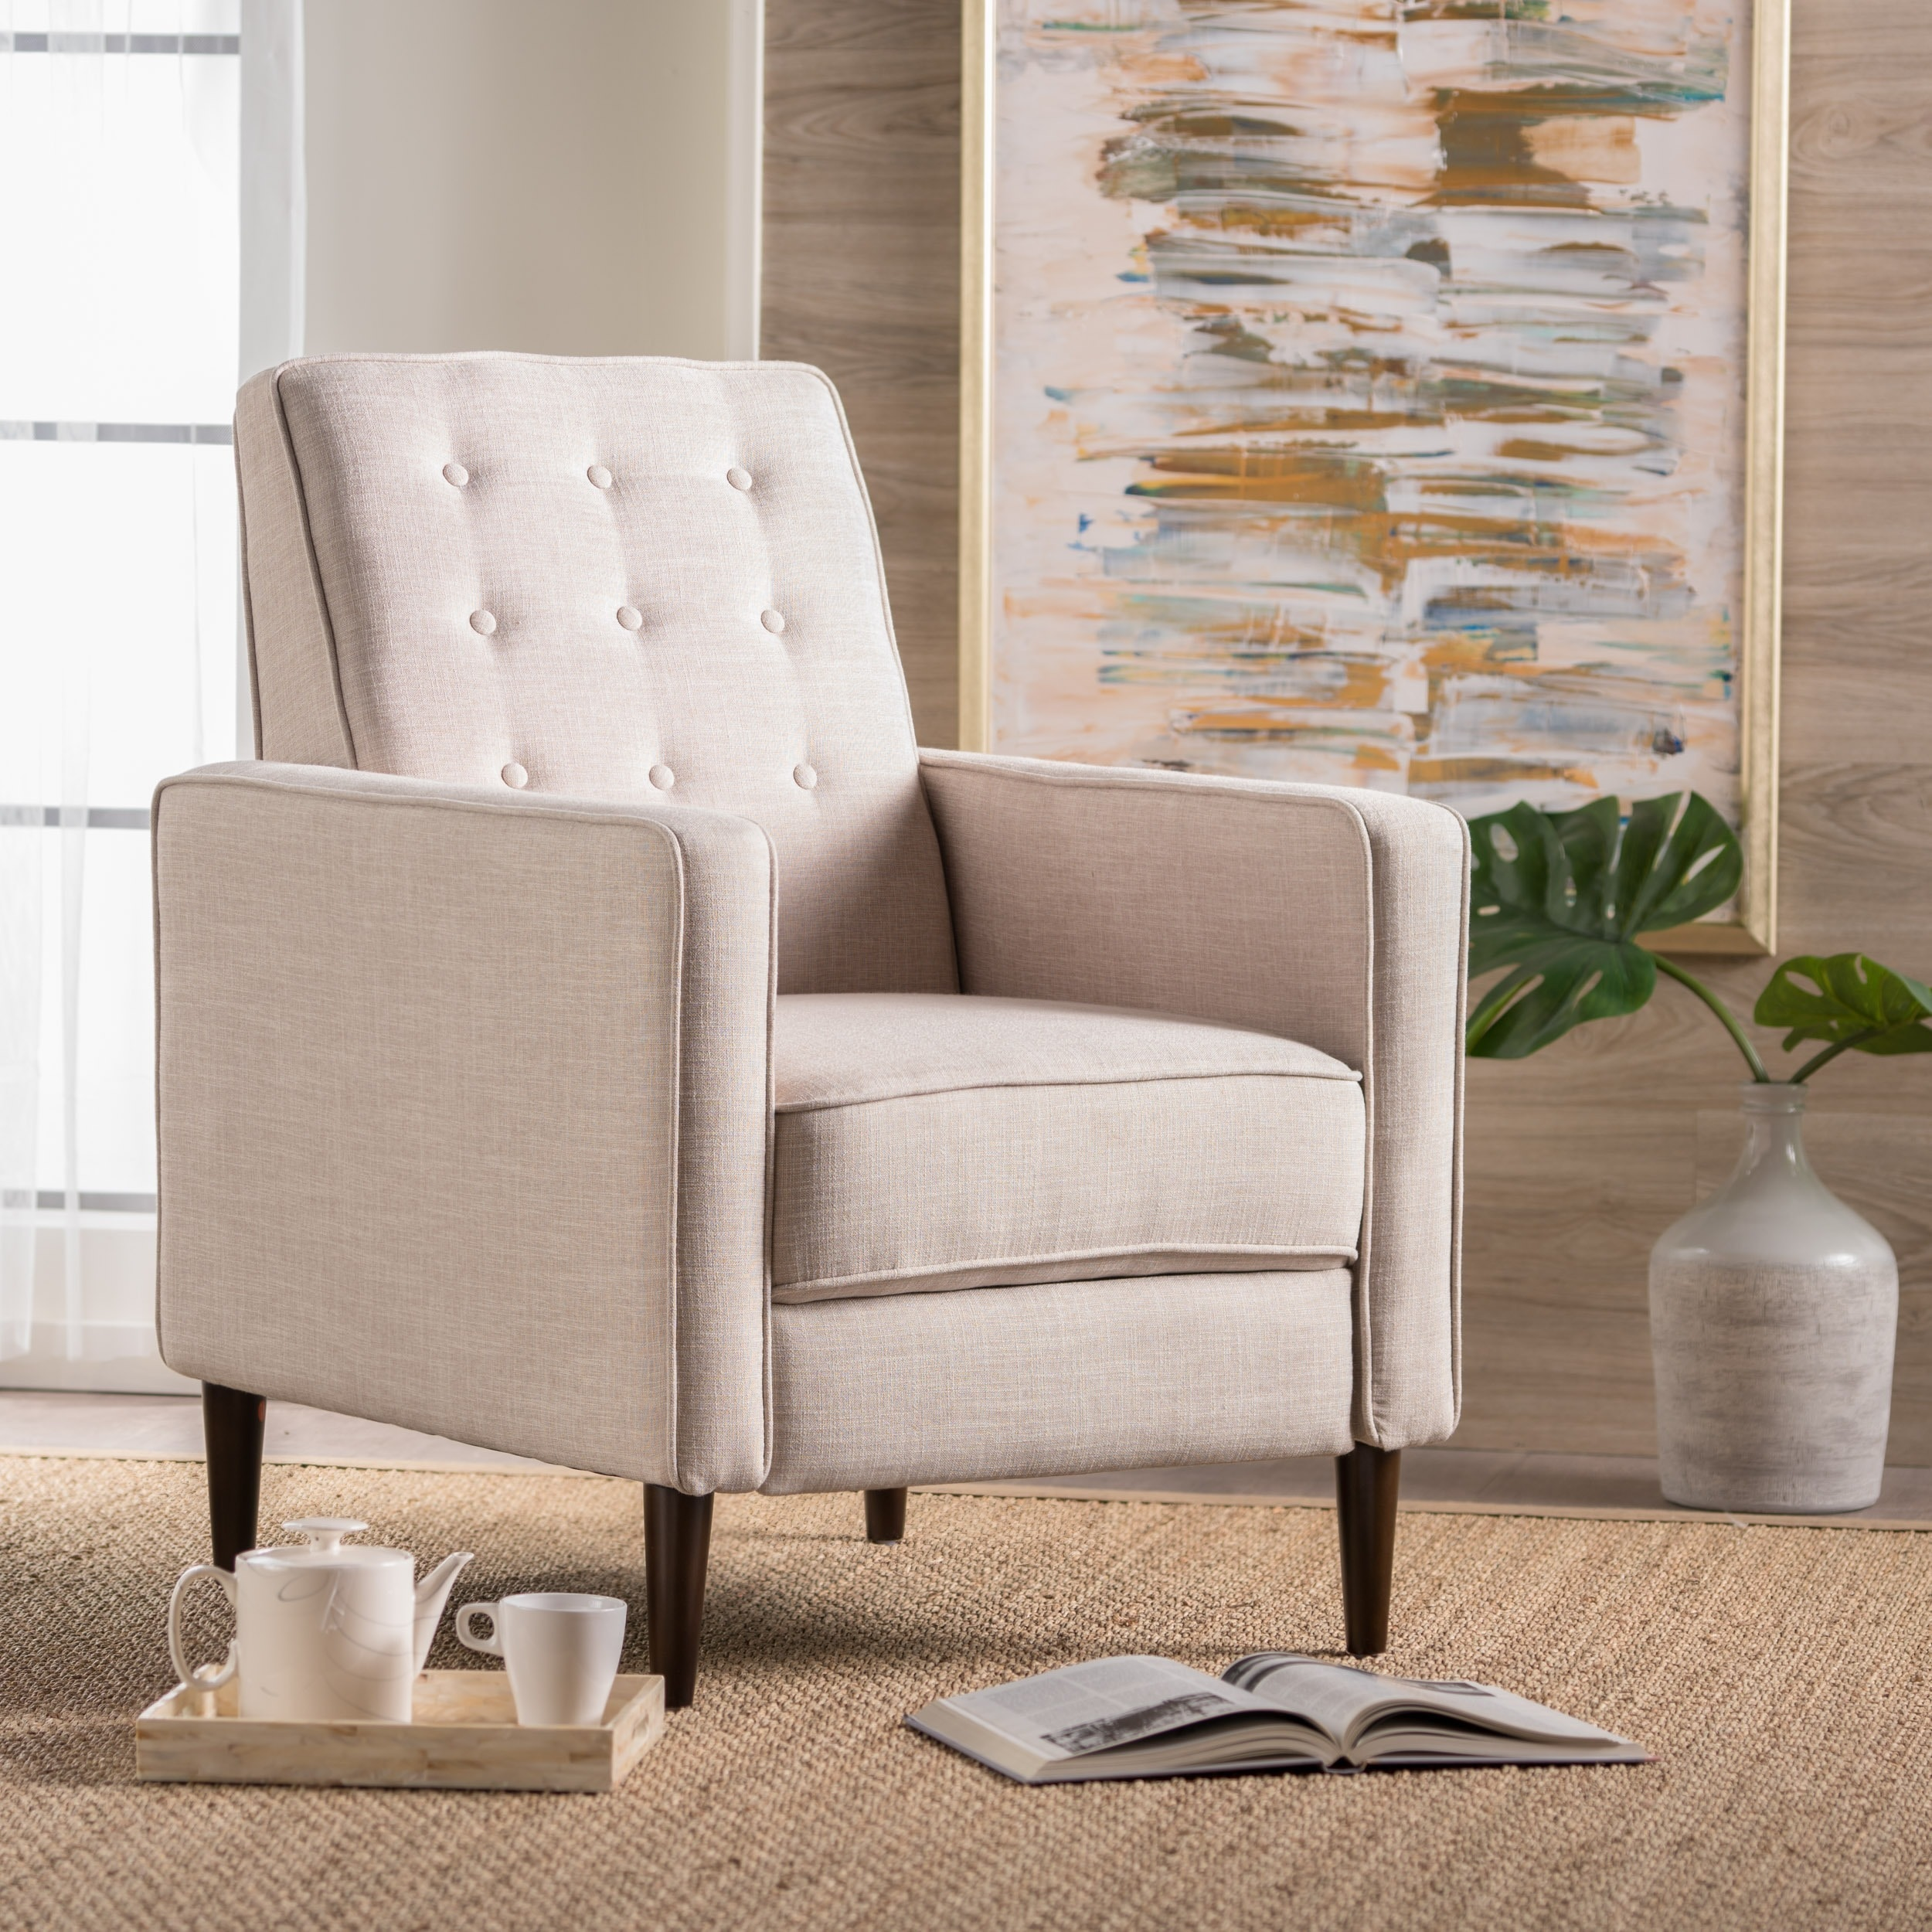 Living Room Furniture | Find Great Furniture Deals Shopping at ... on